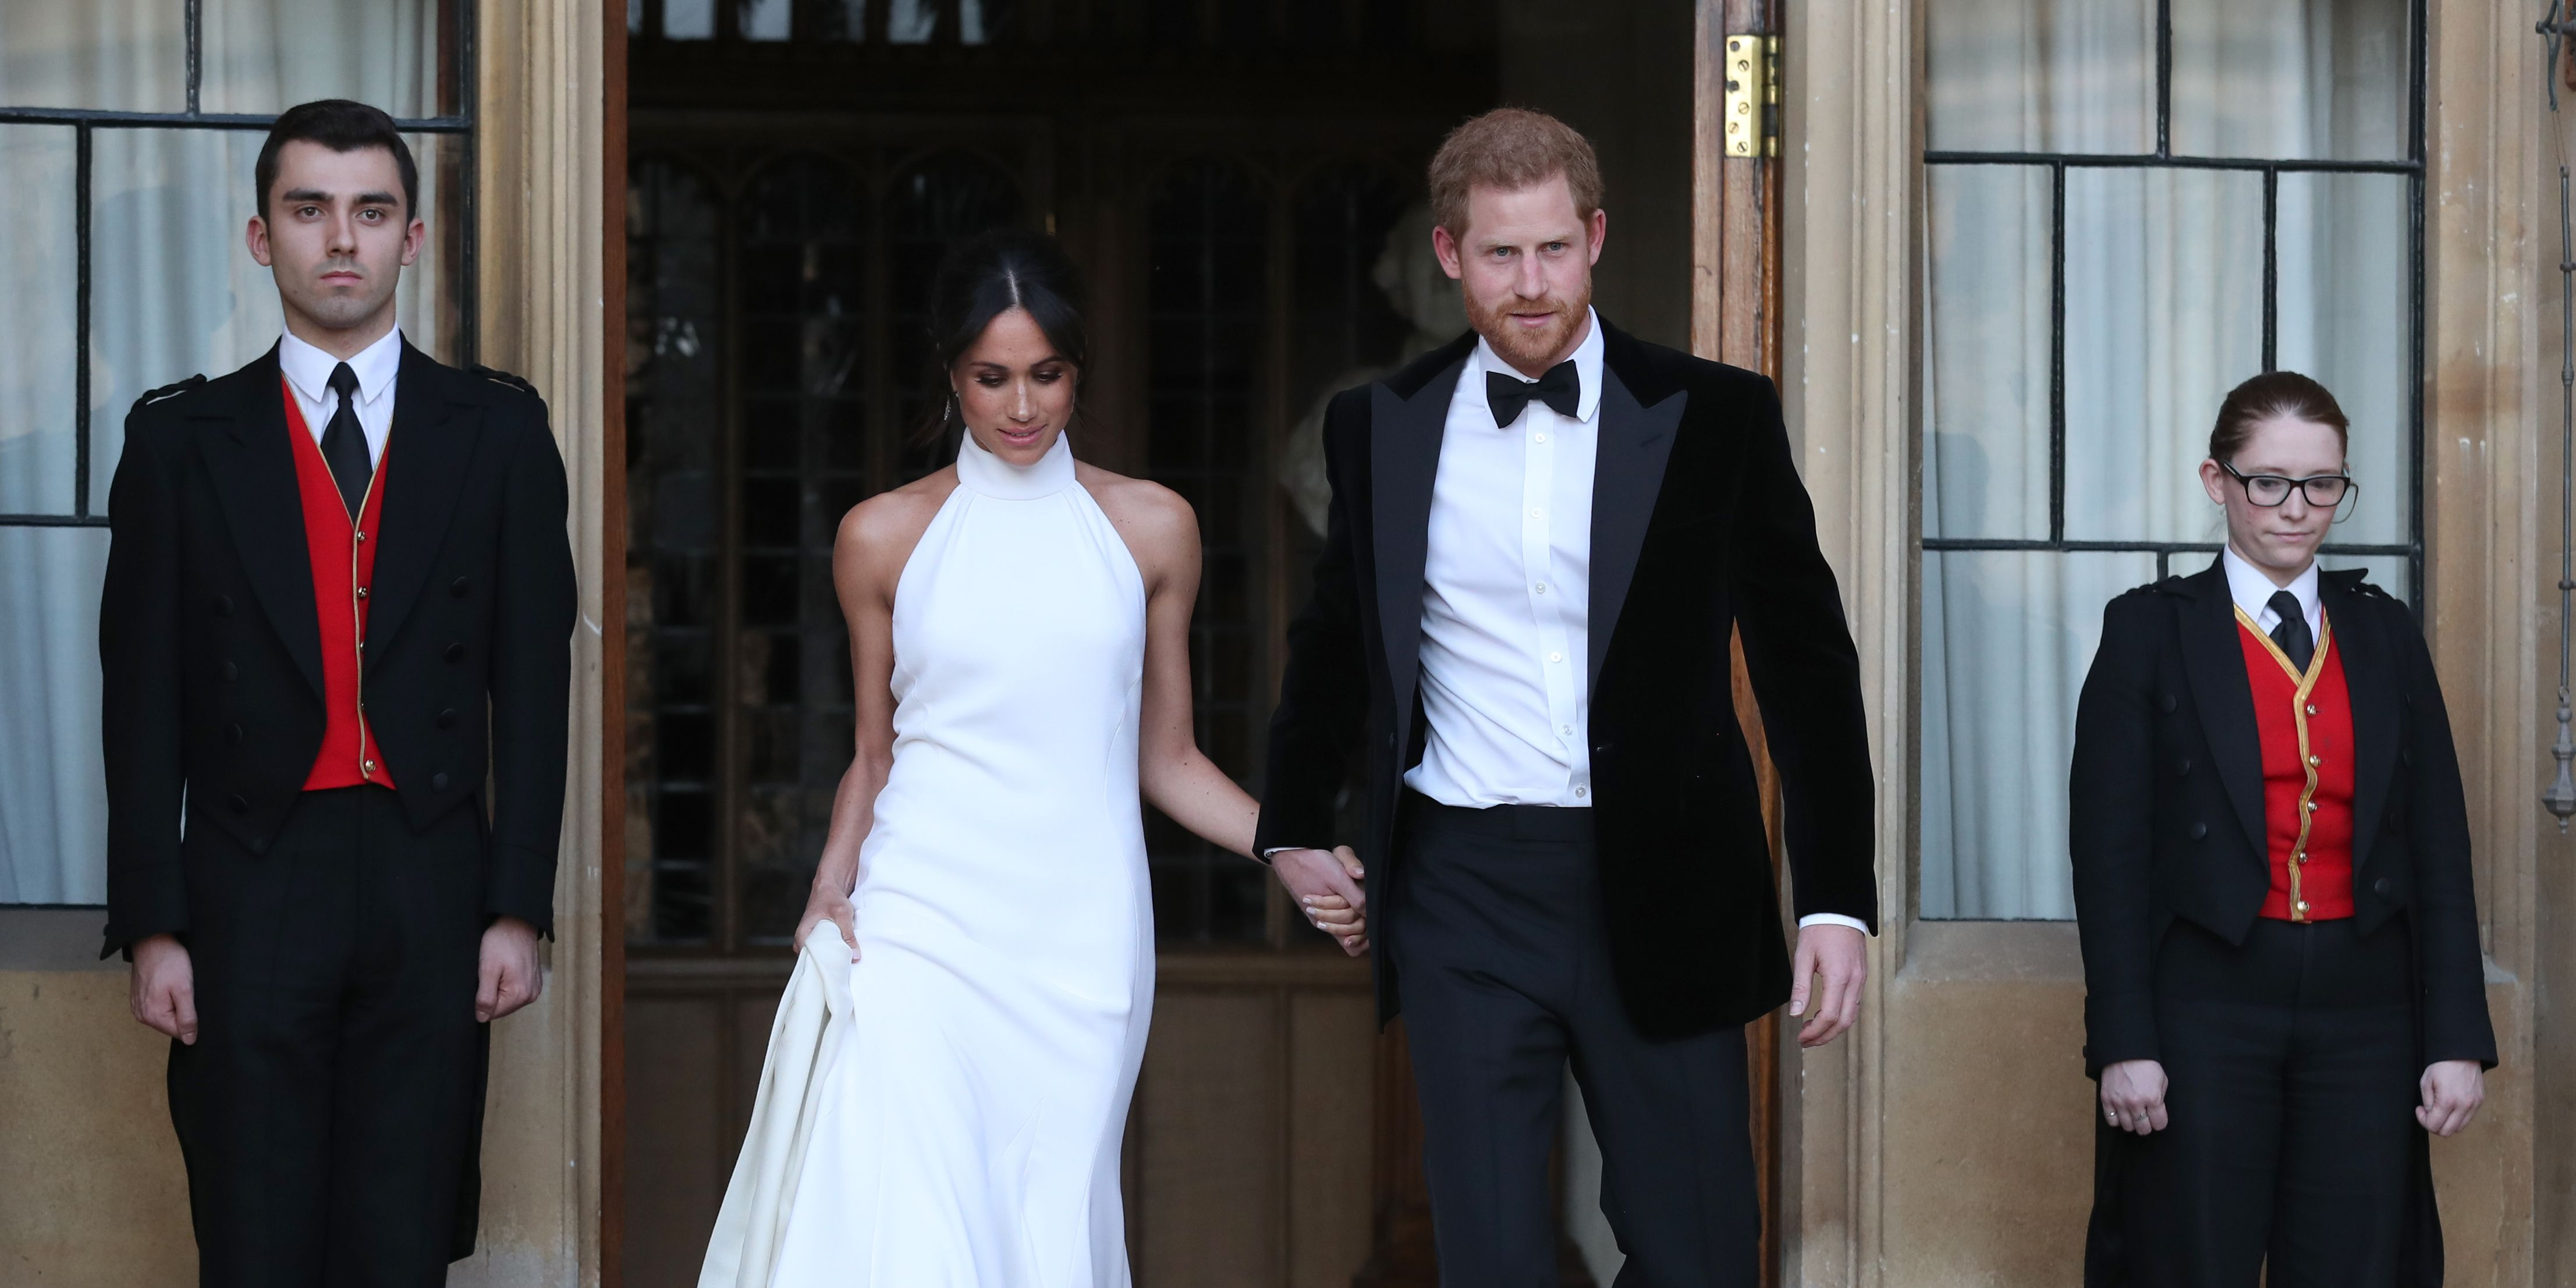 Meghan Markle and Prince Harry Arrive at Reception